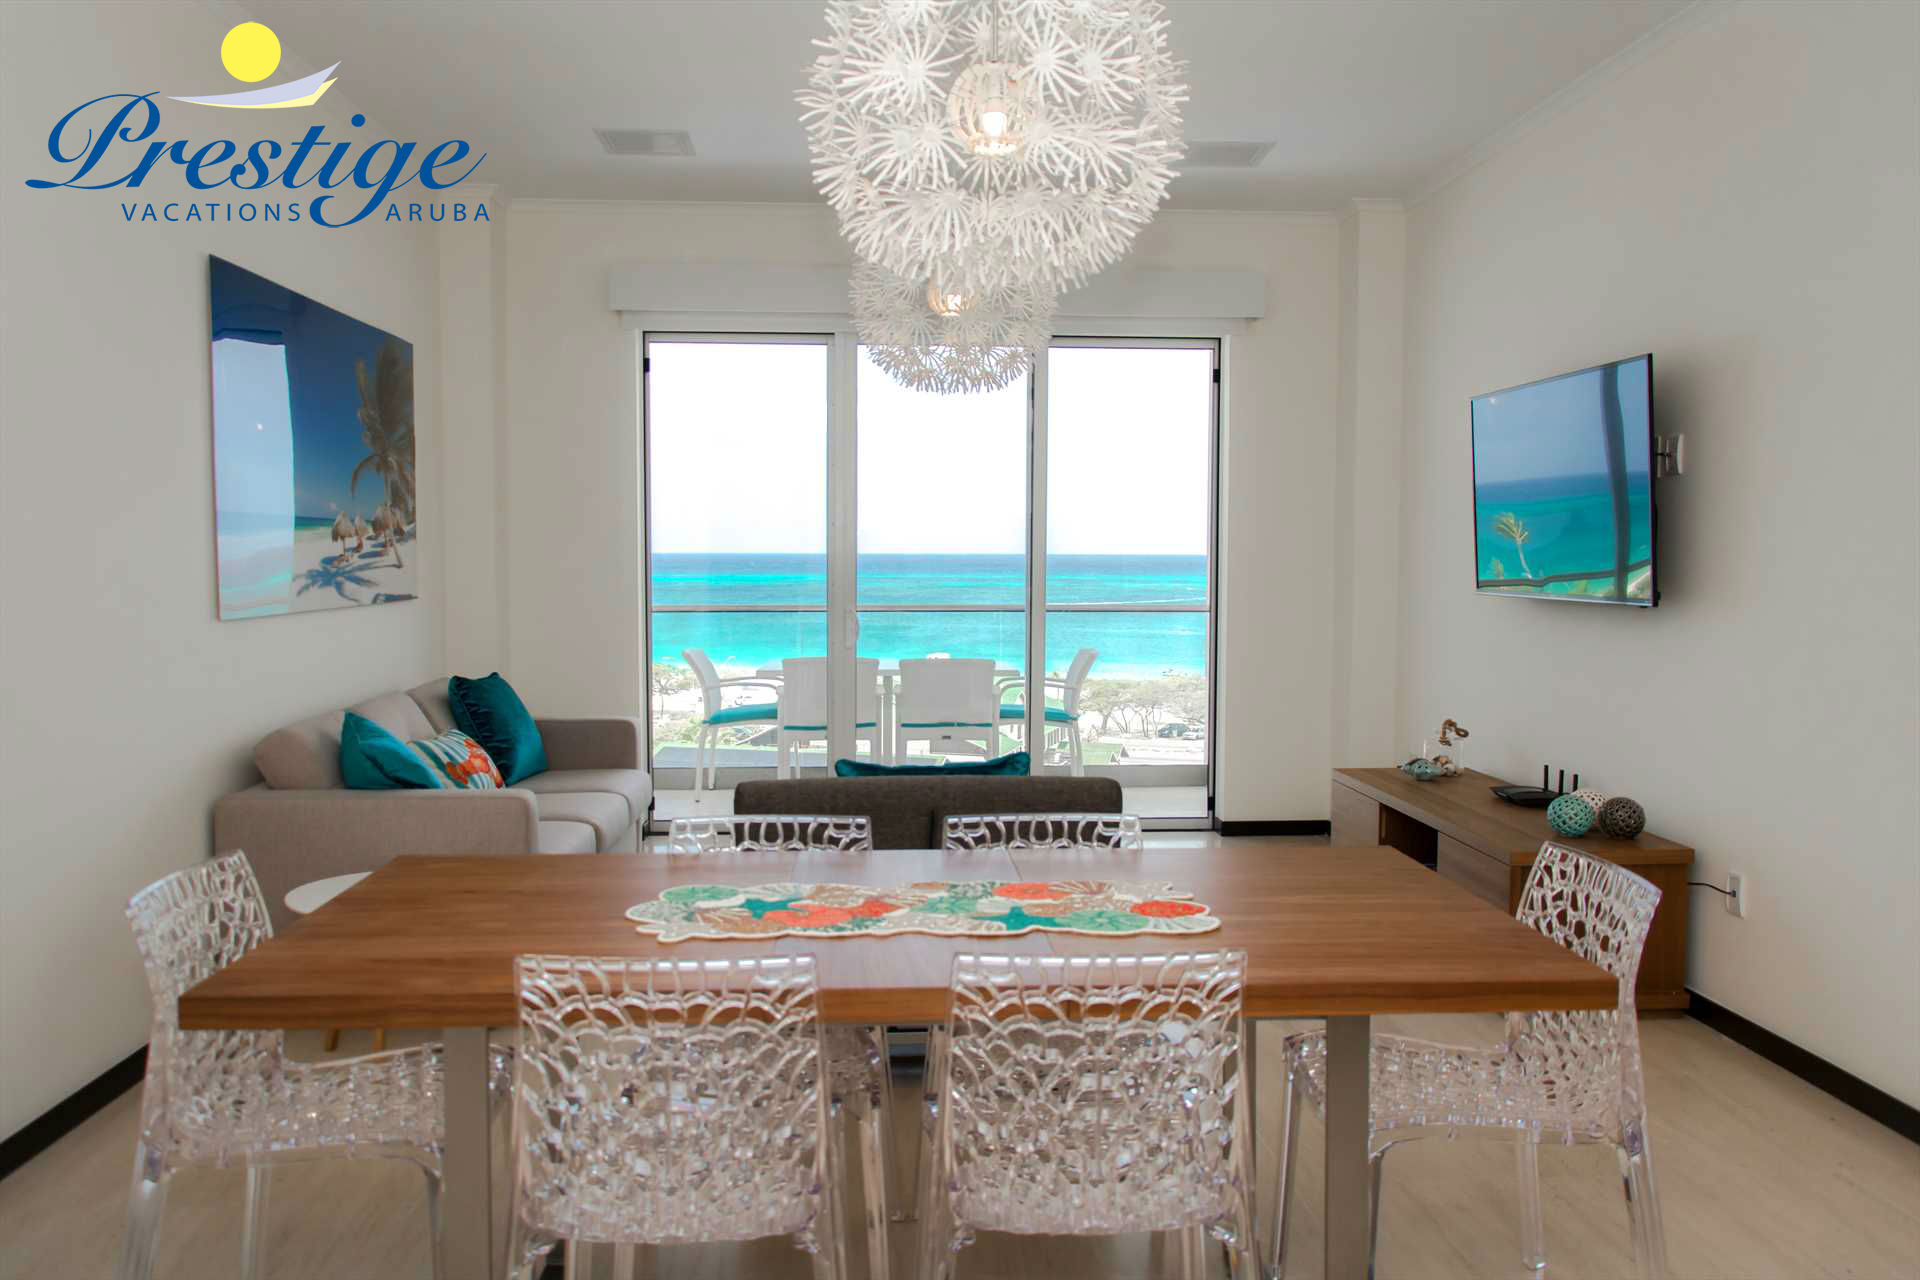 Welcome to your Teal View Two-bedroom condo, living room with ocean views!